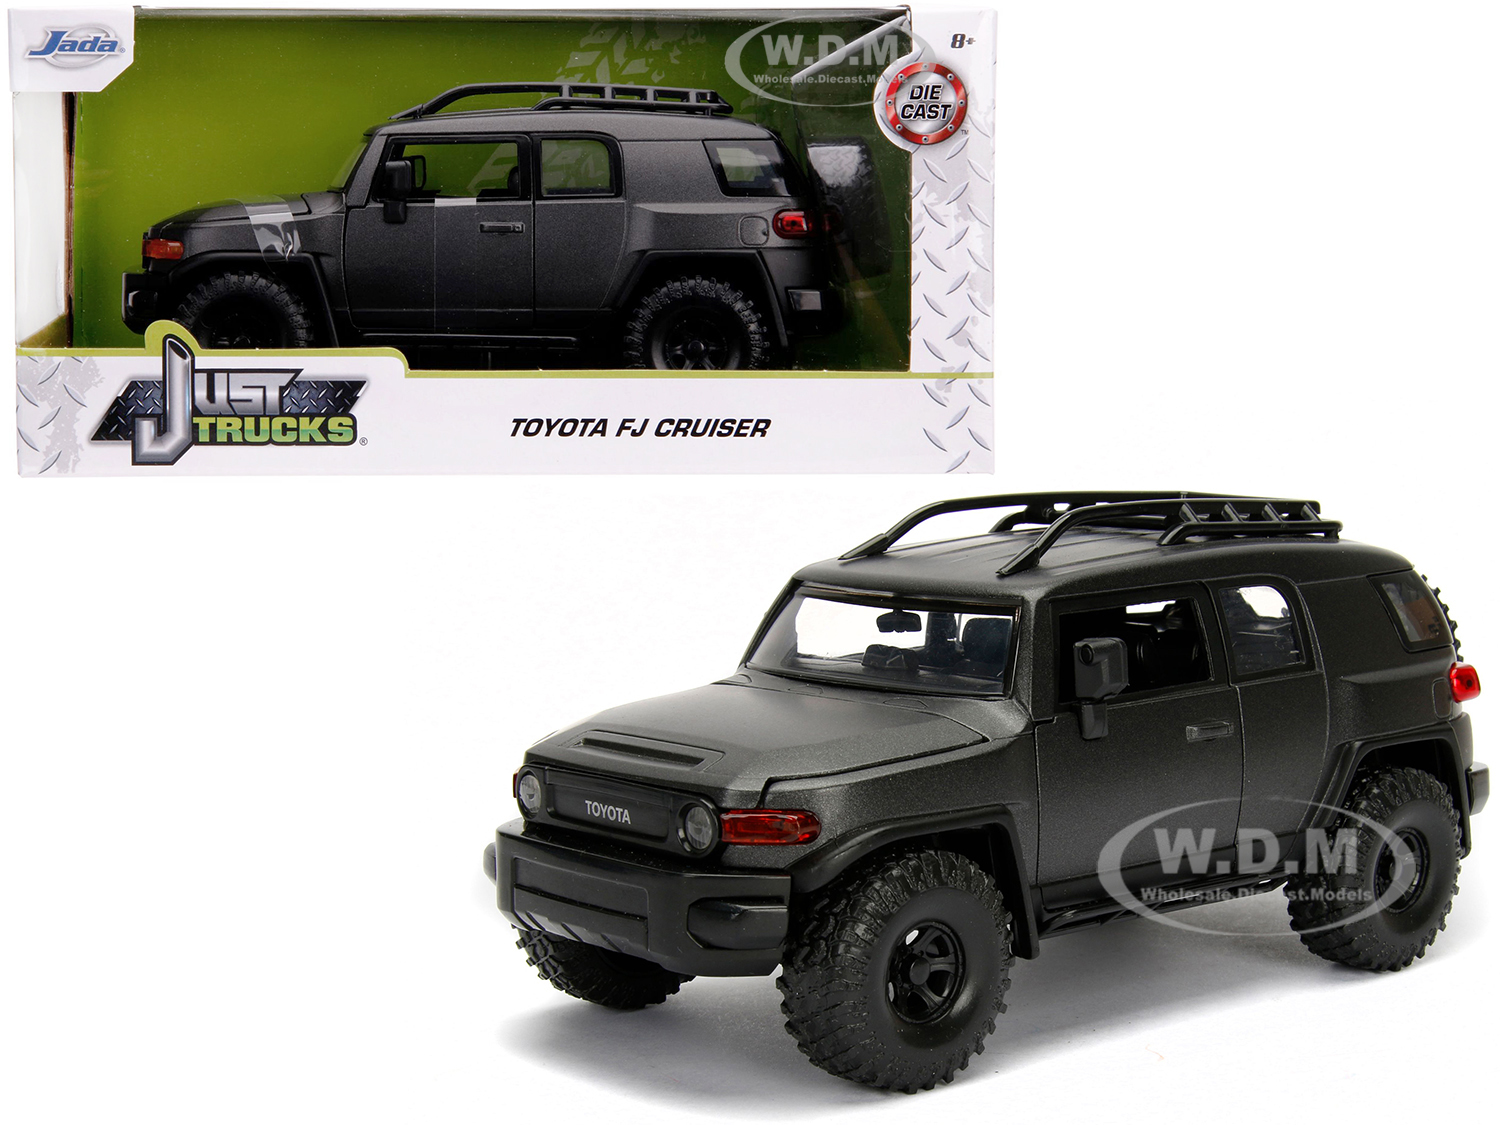 Toyota FJ Cruiser with Roof Rack Charcoal Gray Metallic